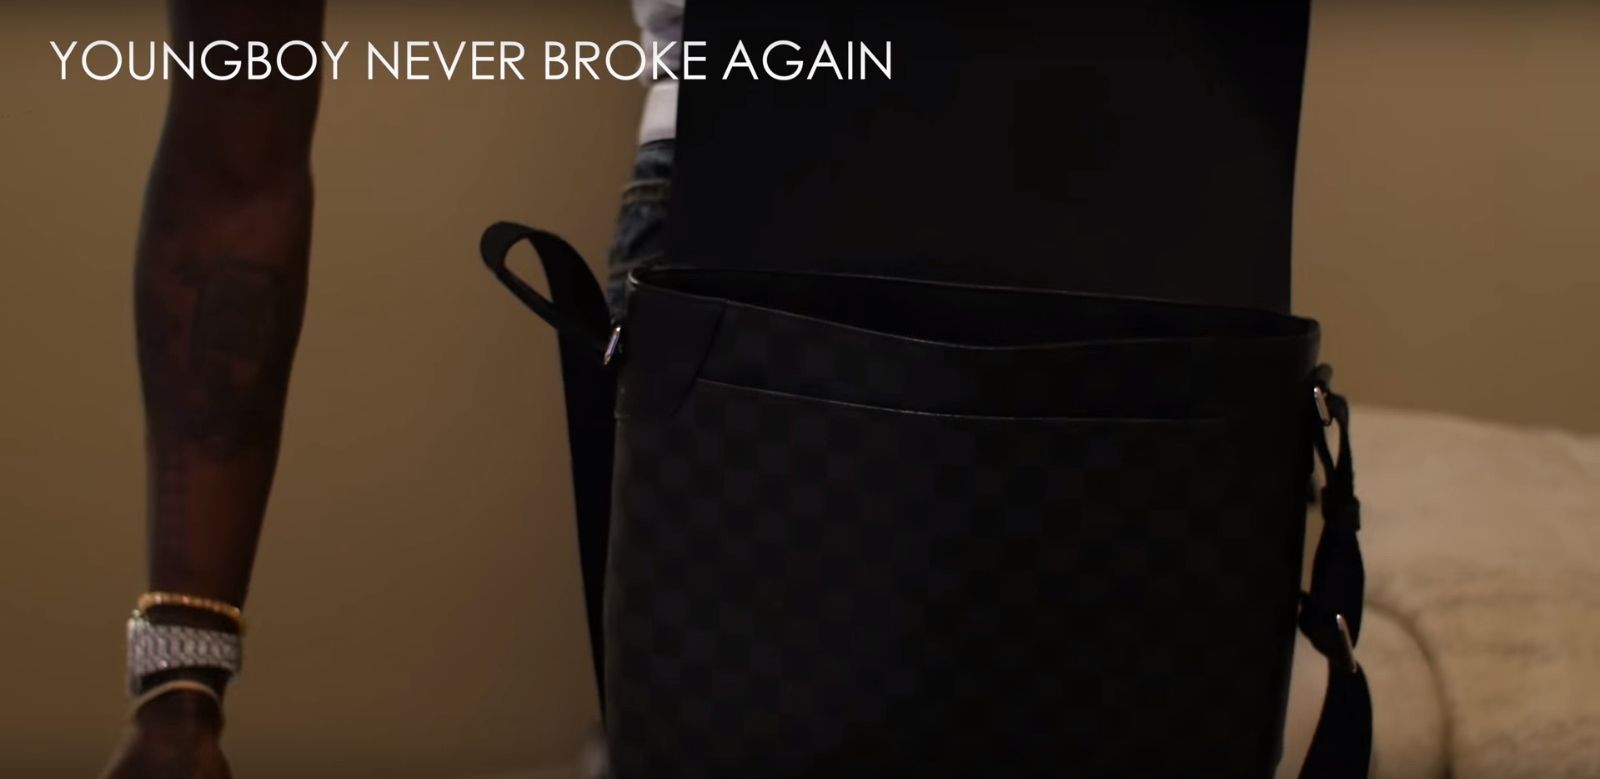 Louis Vuitton Men's Bag - YoungBoy Never Broke Again - Graffiti (2017) - Official Music Video Product Placement